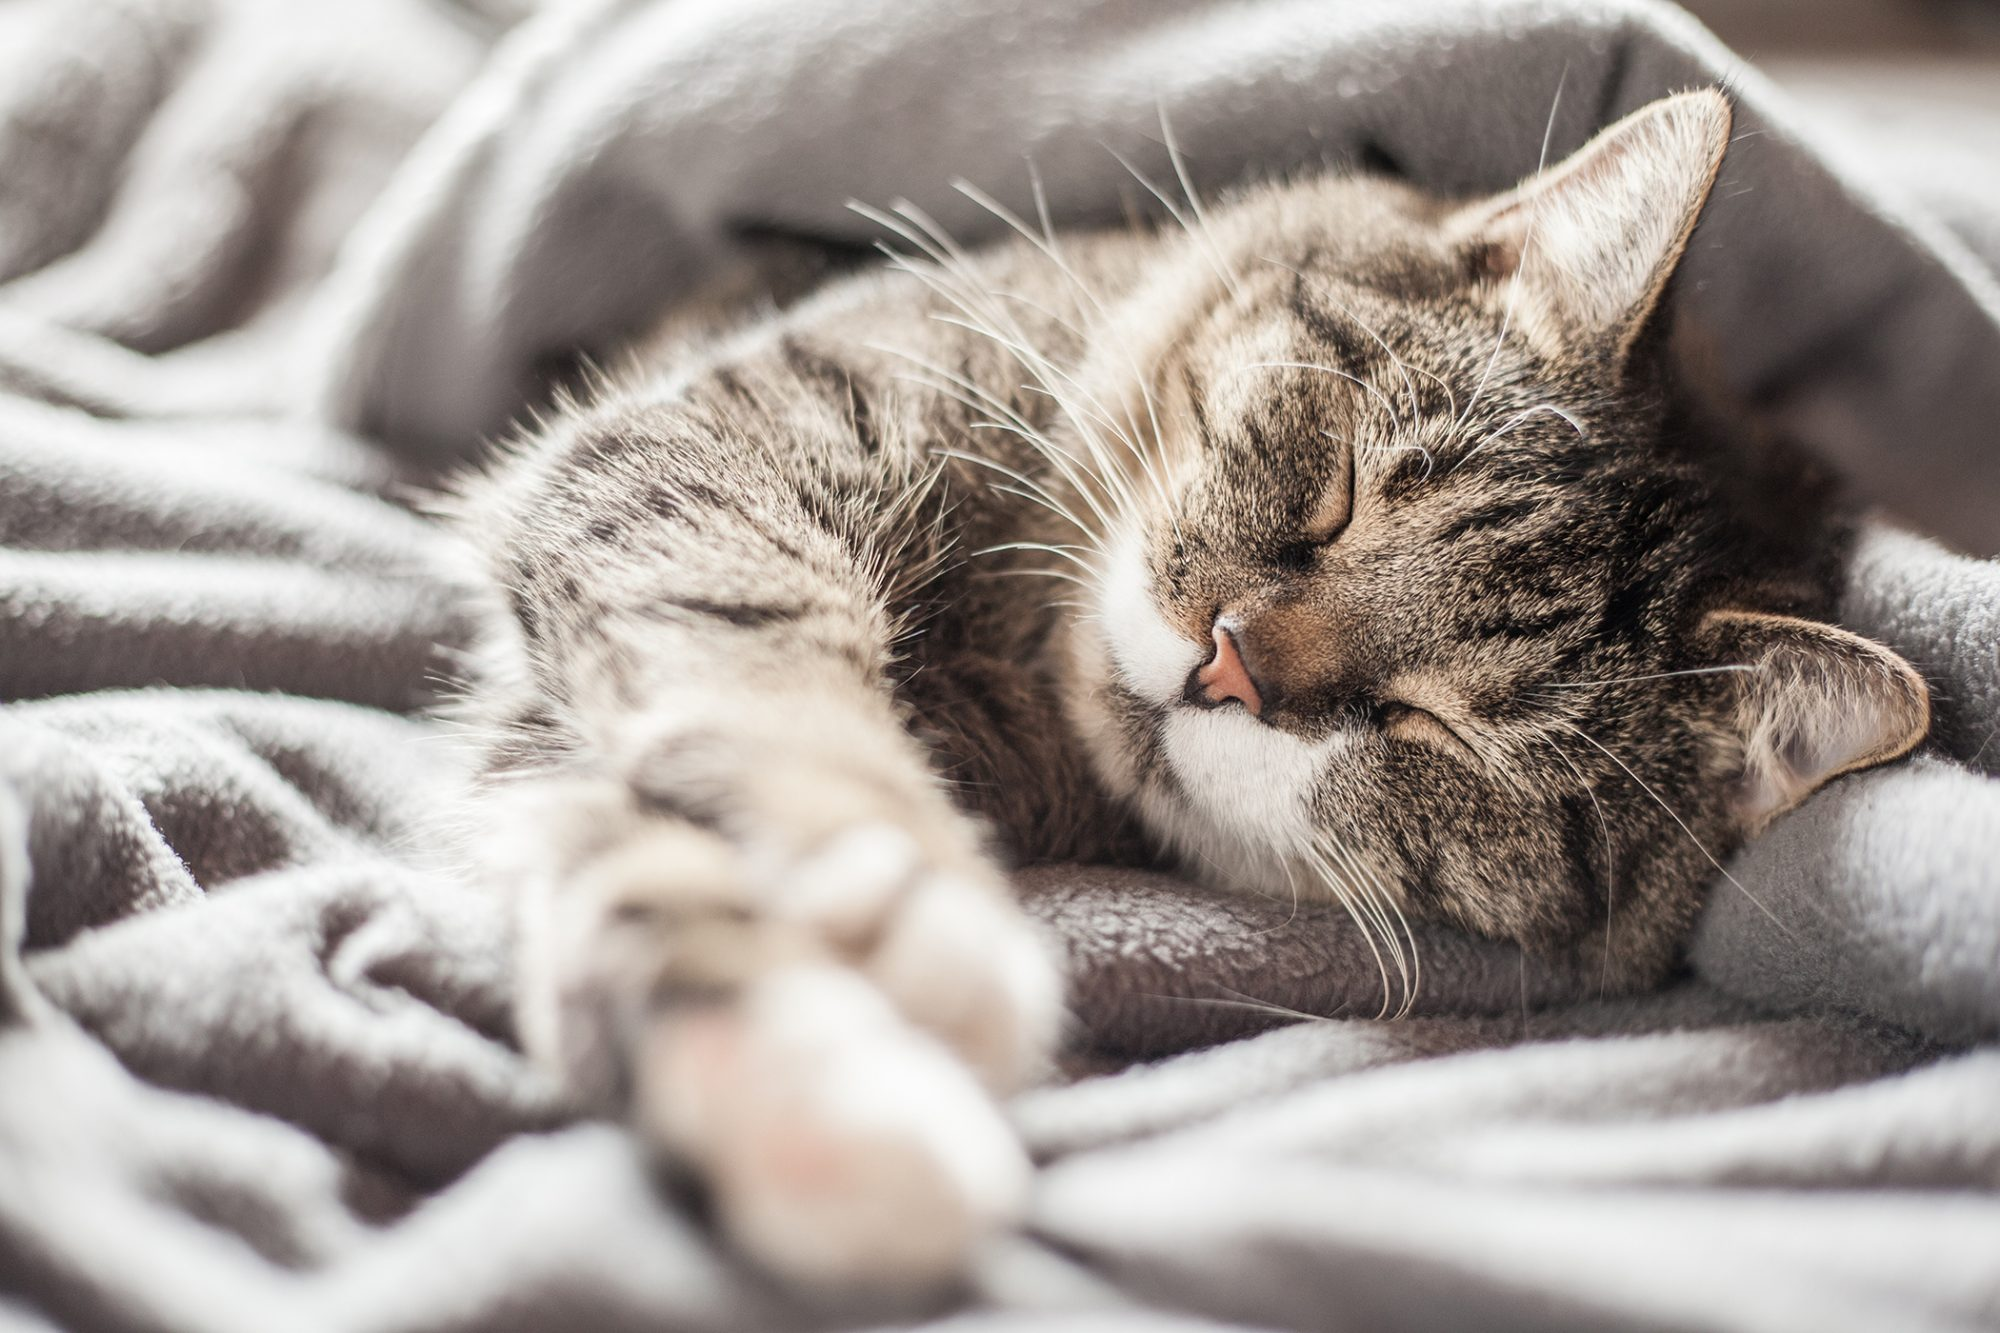 Striped cat is asleep in a fluffy blanket